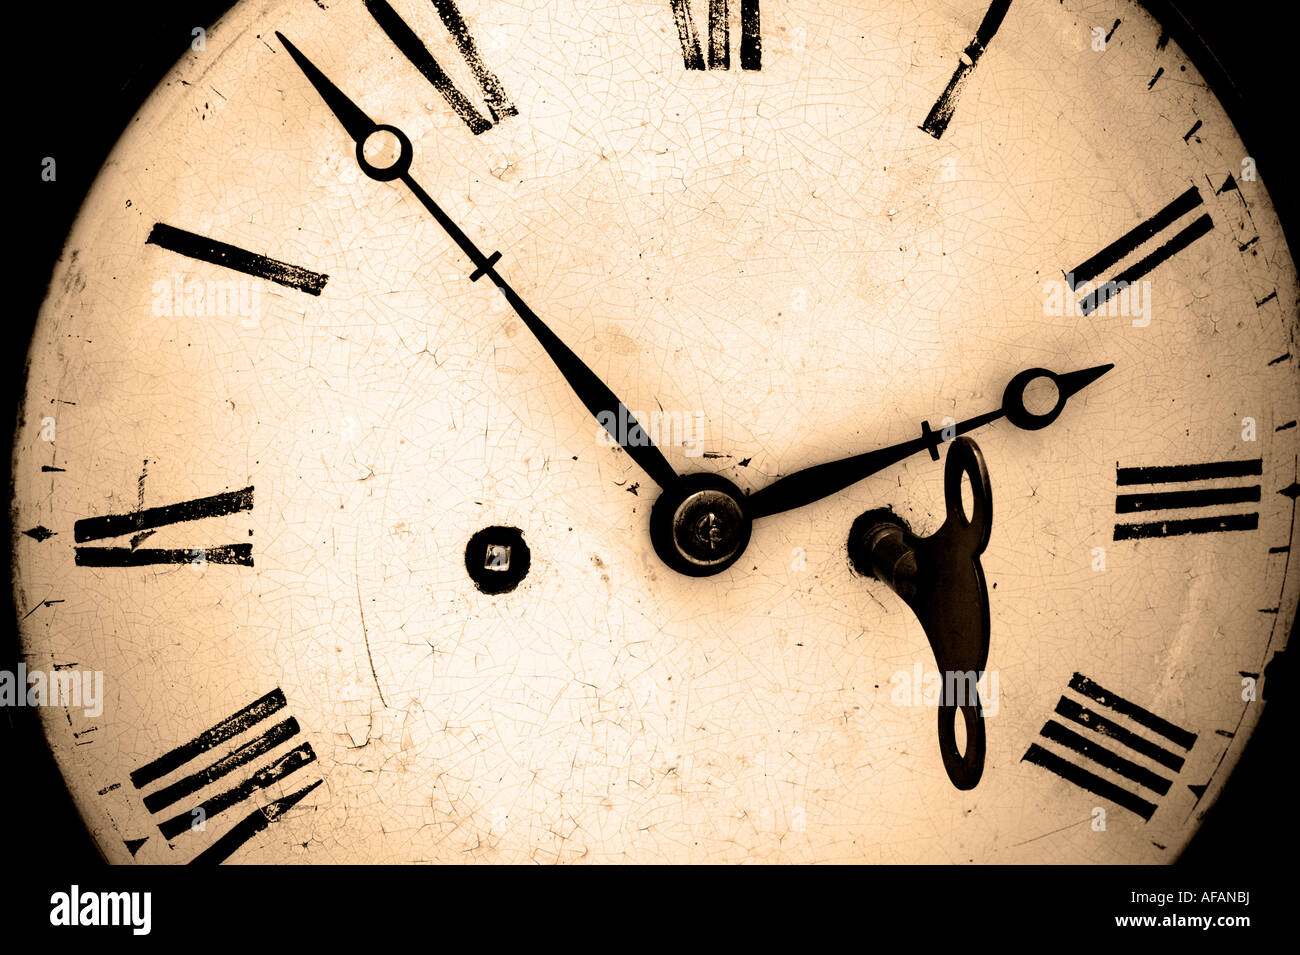 Antique clock face with winder key in position sepia toned - Stock Image